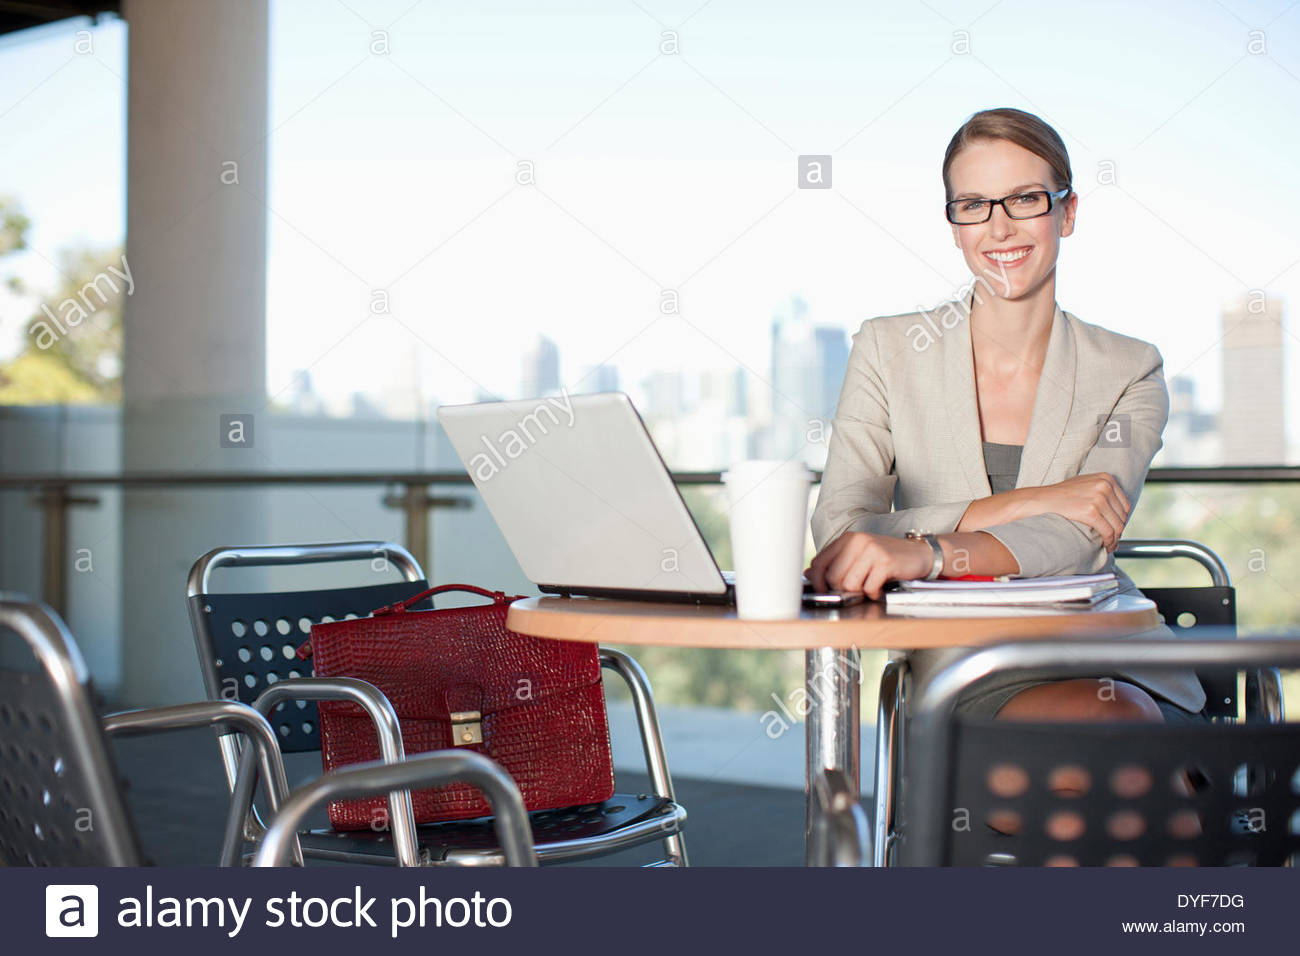 Smiling businesswoman  in cafe with laptop - Stock Image